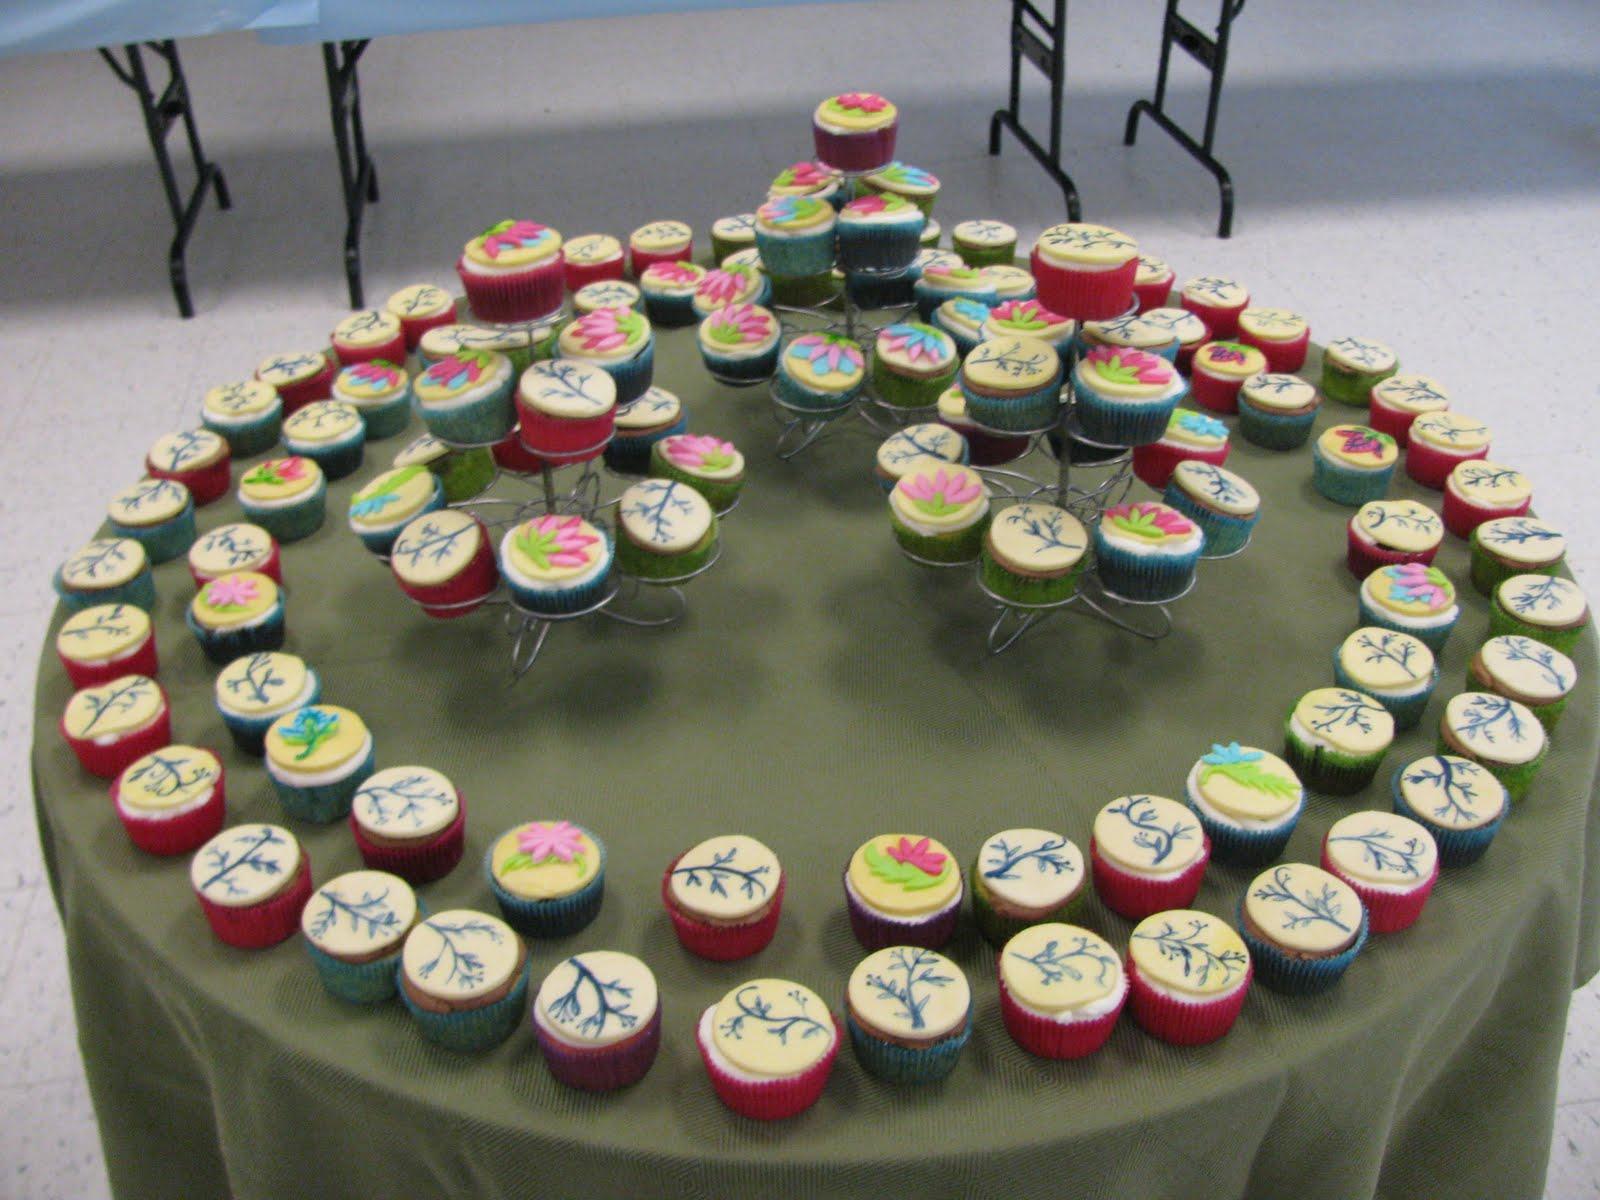 Homemade By Heather 33 Retirement Cupcakes Spring Flowers